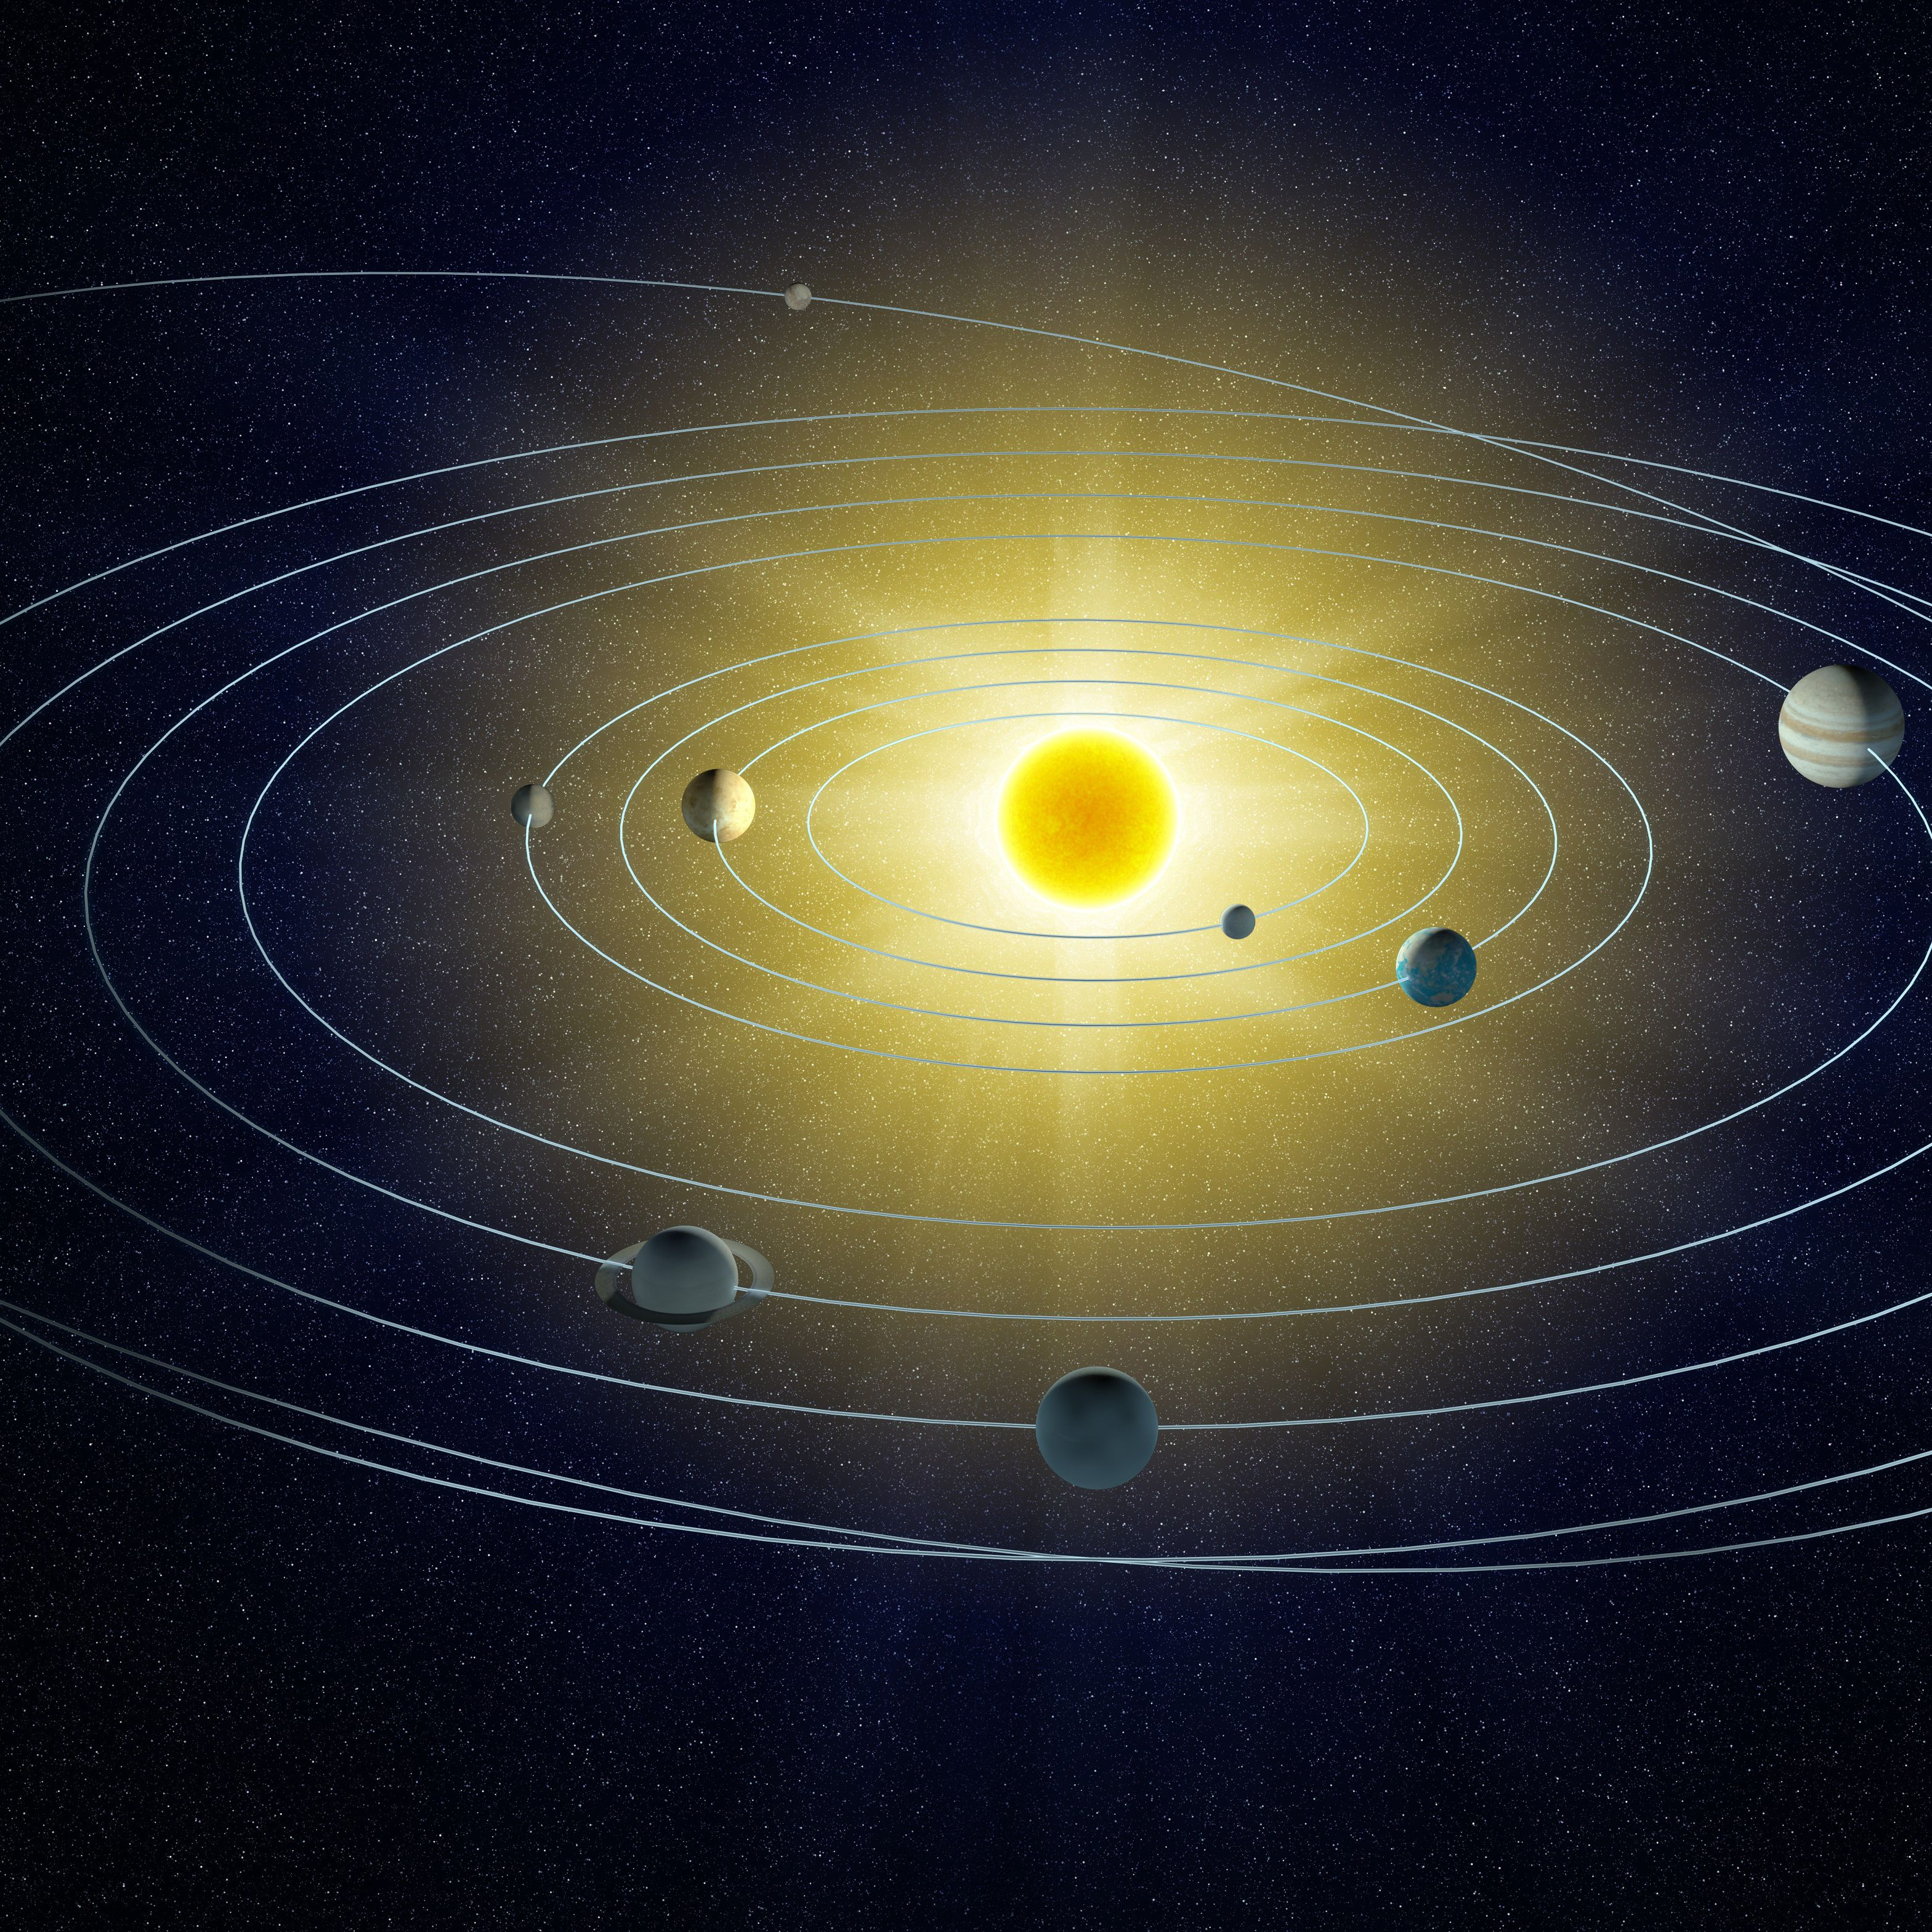 Scale Model Of The Solar System Using Sports Balls